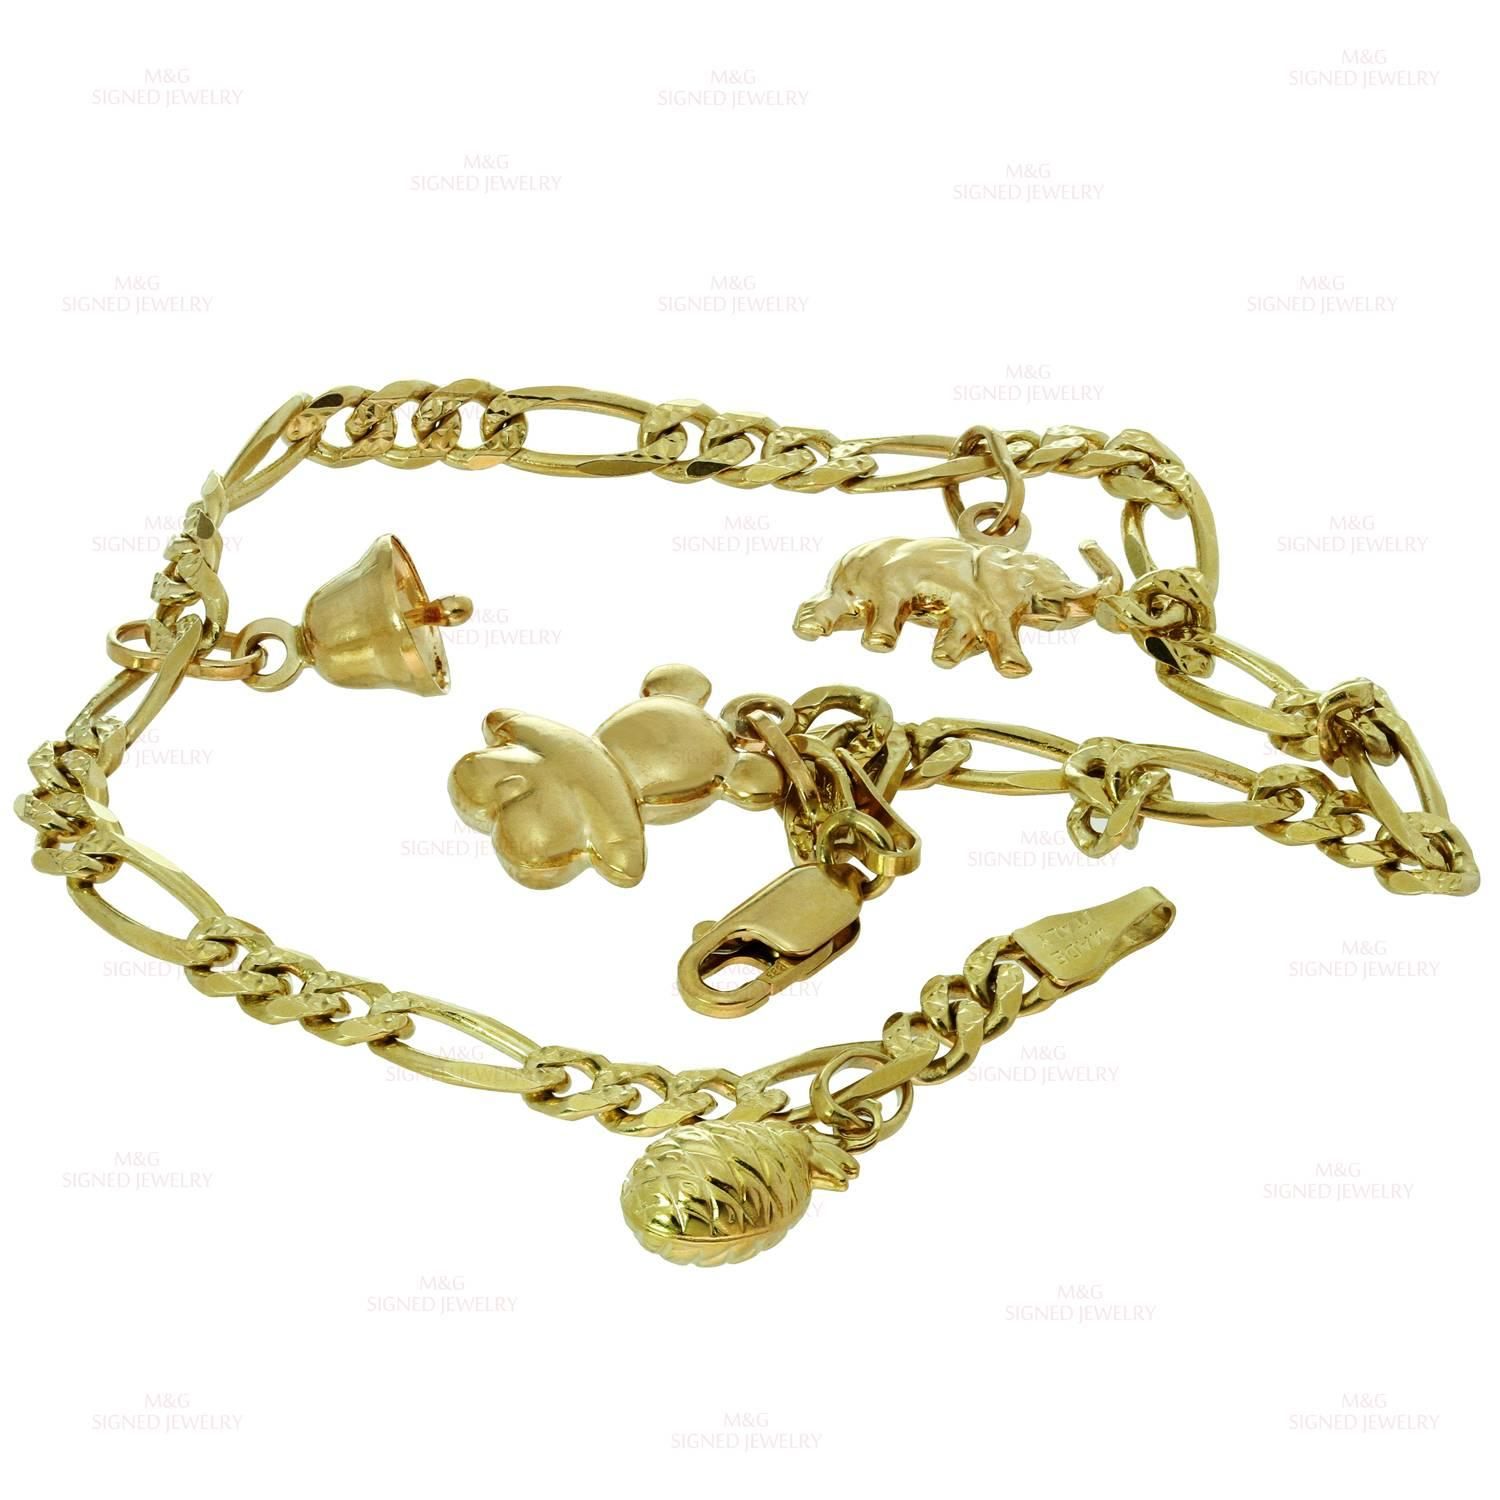 jewelry bracelet gold in diamond rose chain meira k pink lyst fullscreen bar t view karat anklet and